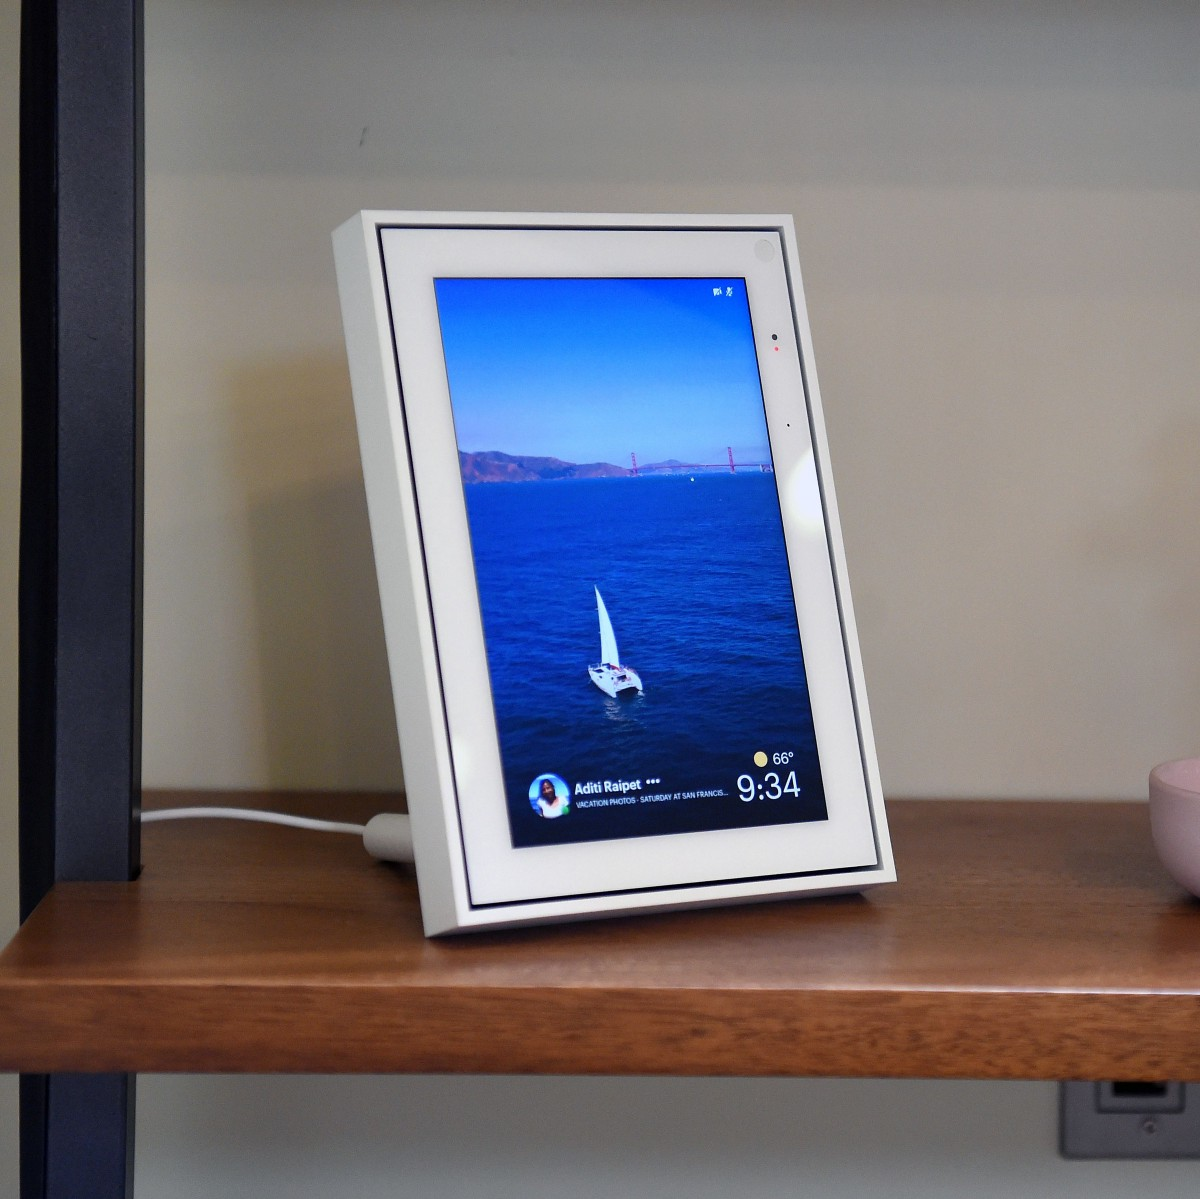 Facebook Is Holding Your Friends Hostage in the Battle for the Smart Home